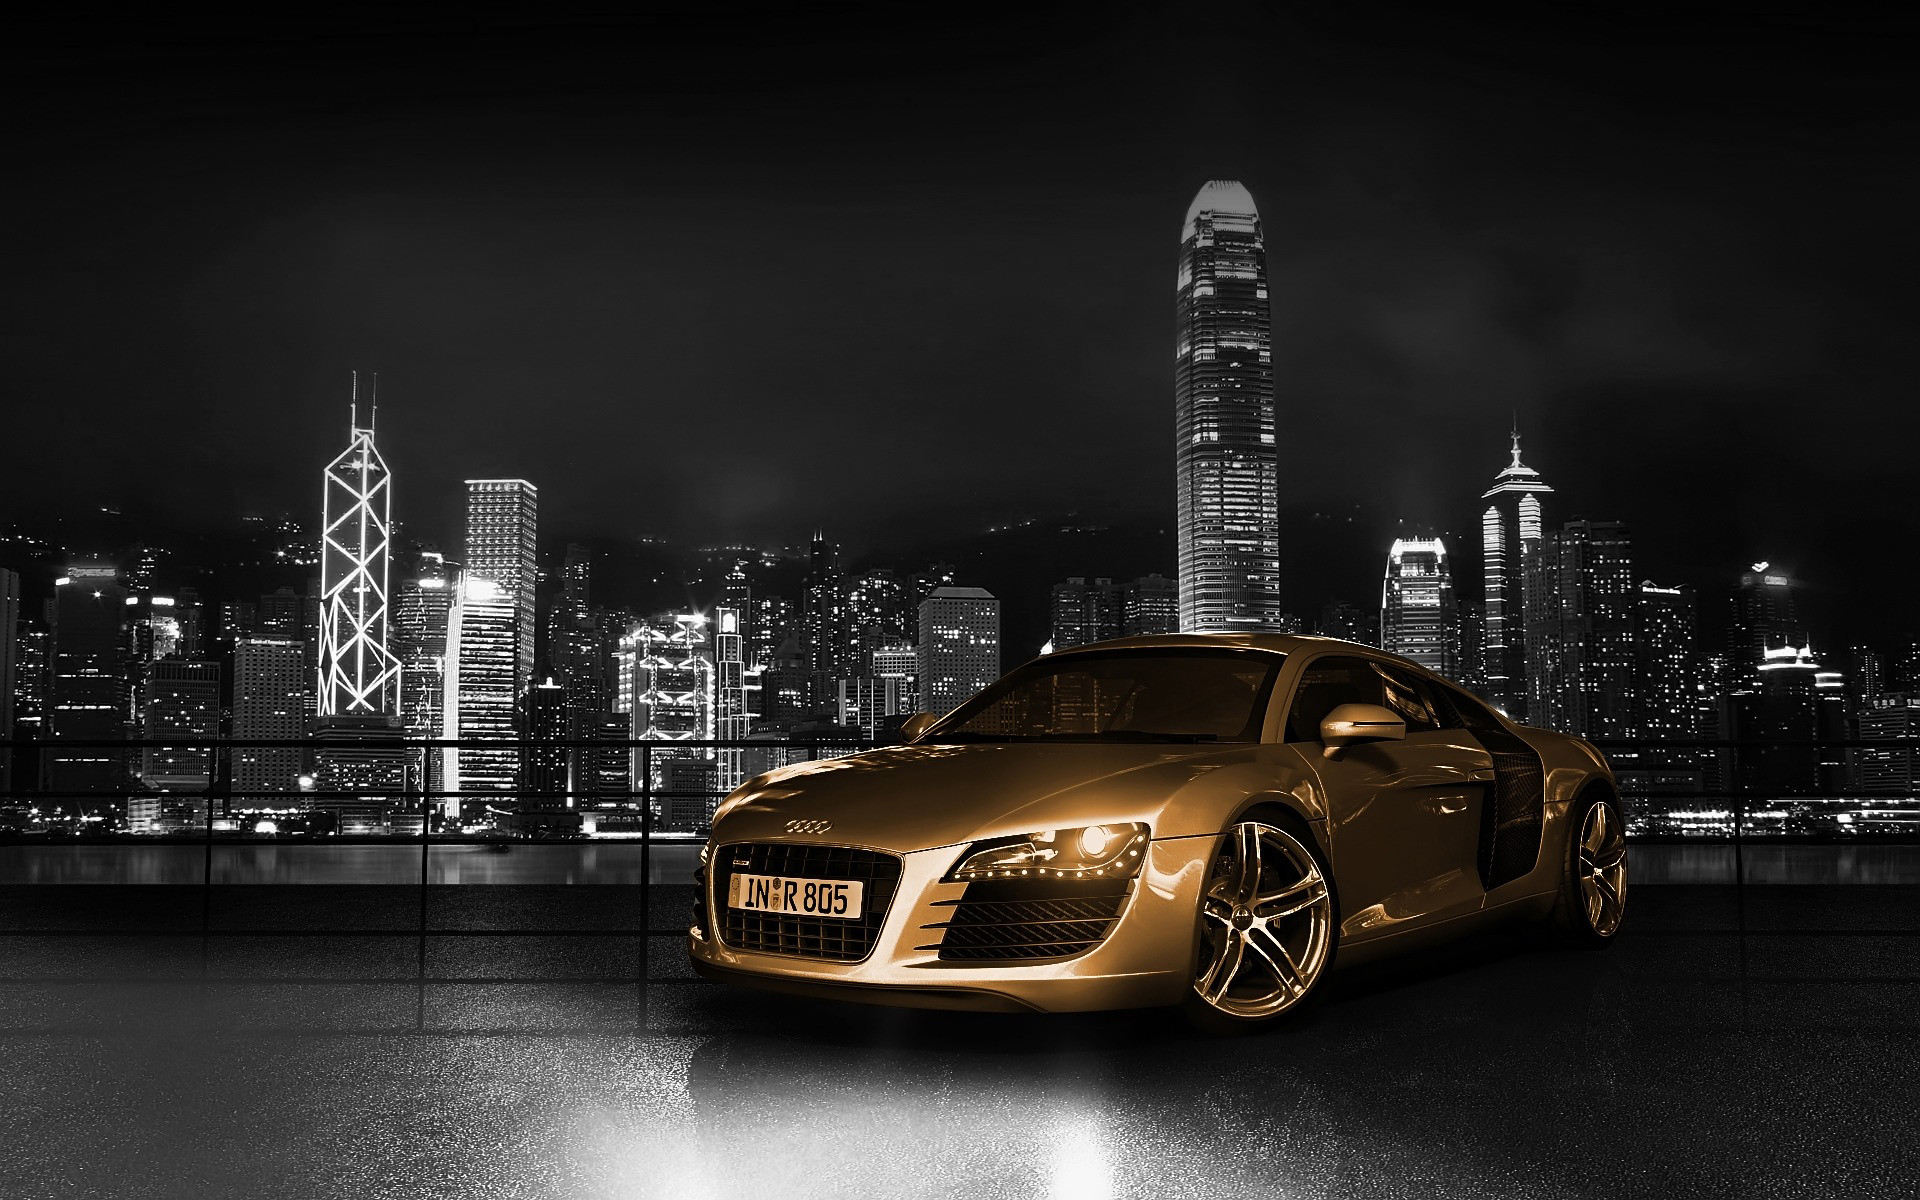 HD Car Wallpapers for Pc